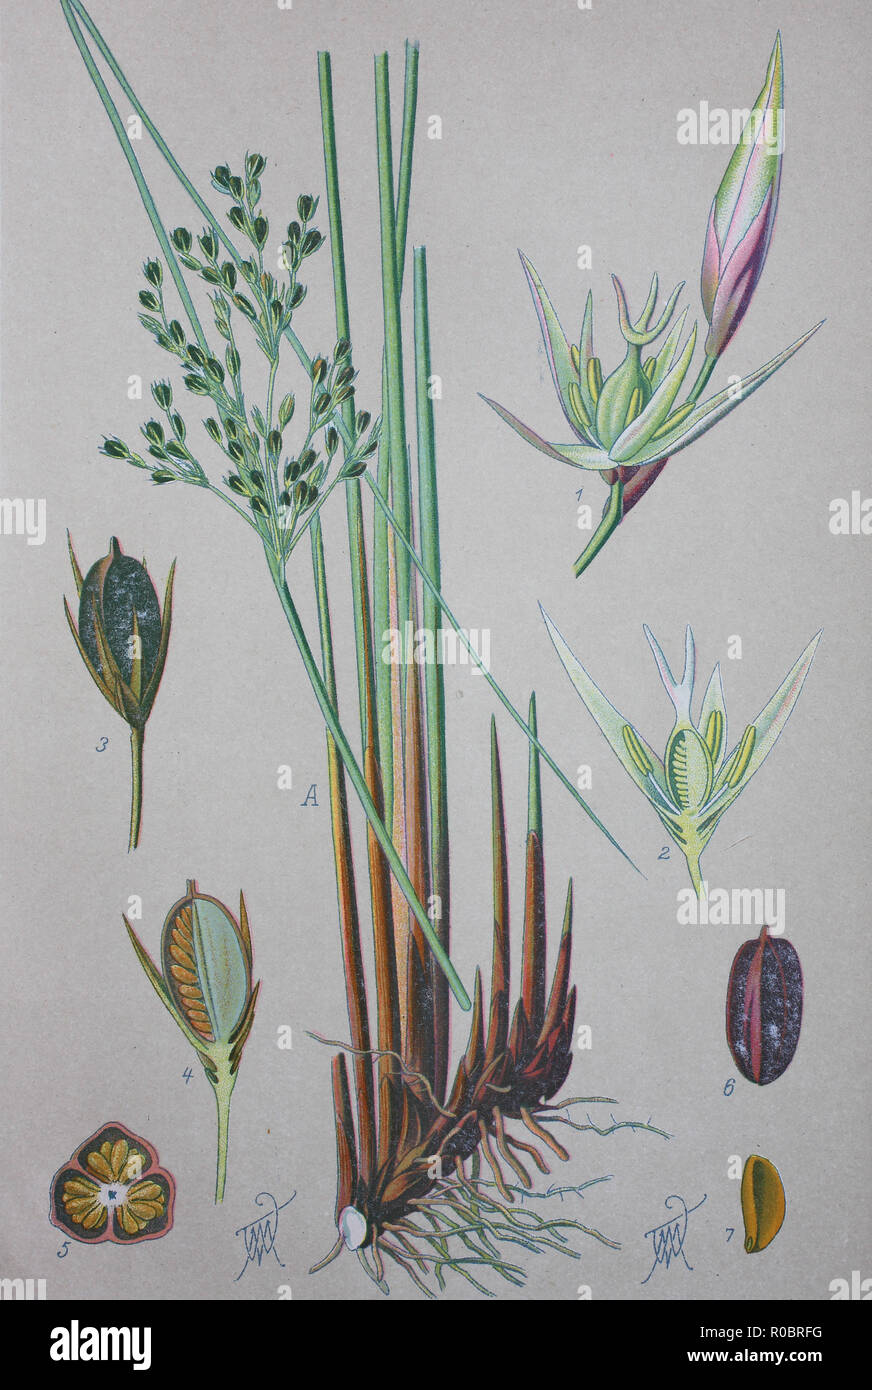 Digital improved high quality reproduction: Juncus effusus, with the common names common rush or soft rush, is a perennial herbaceous flowering plant species in the family Juncaceae - Stock Image